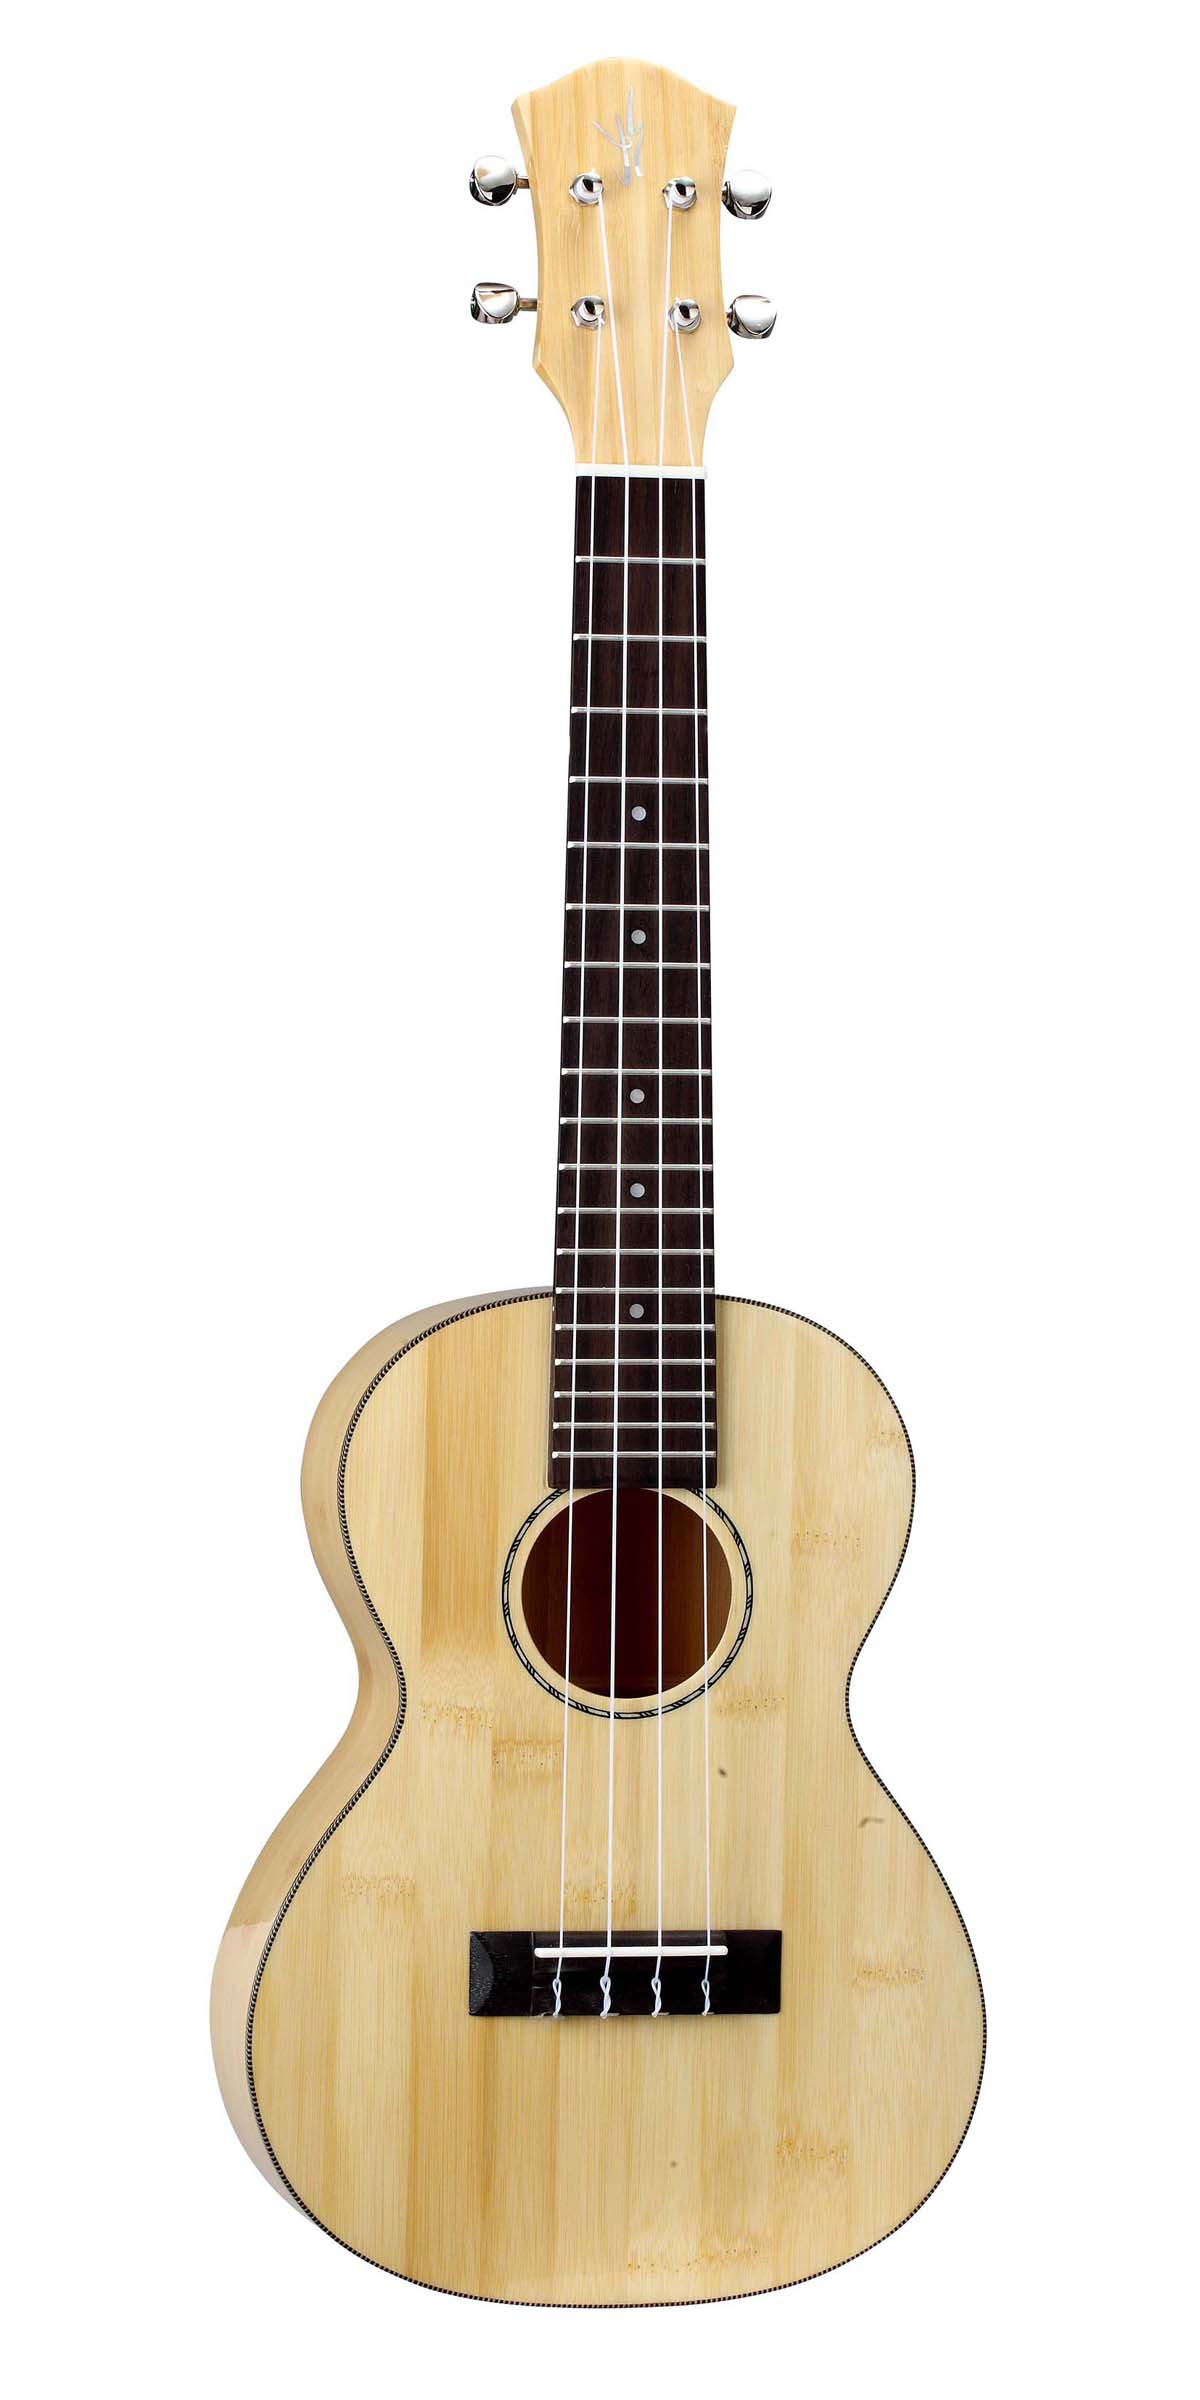 Bamboo Body,Tenor Ukulele